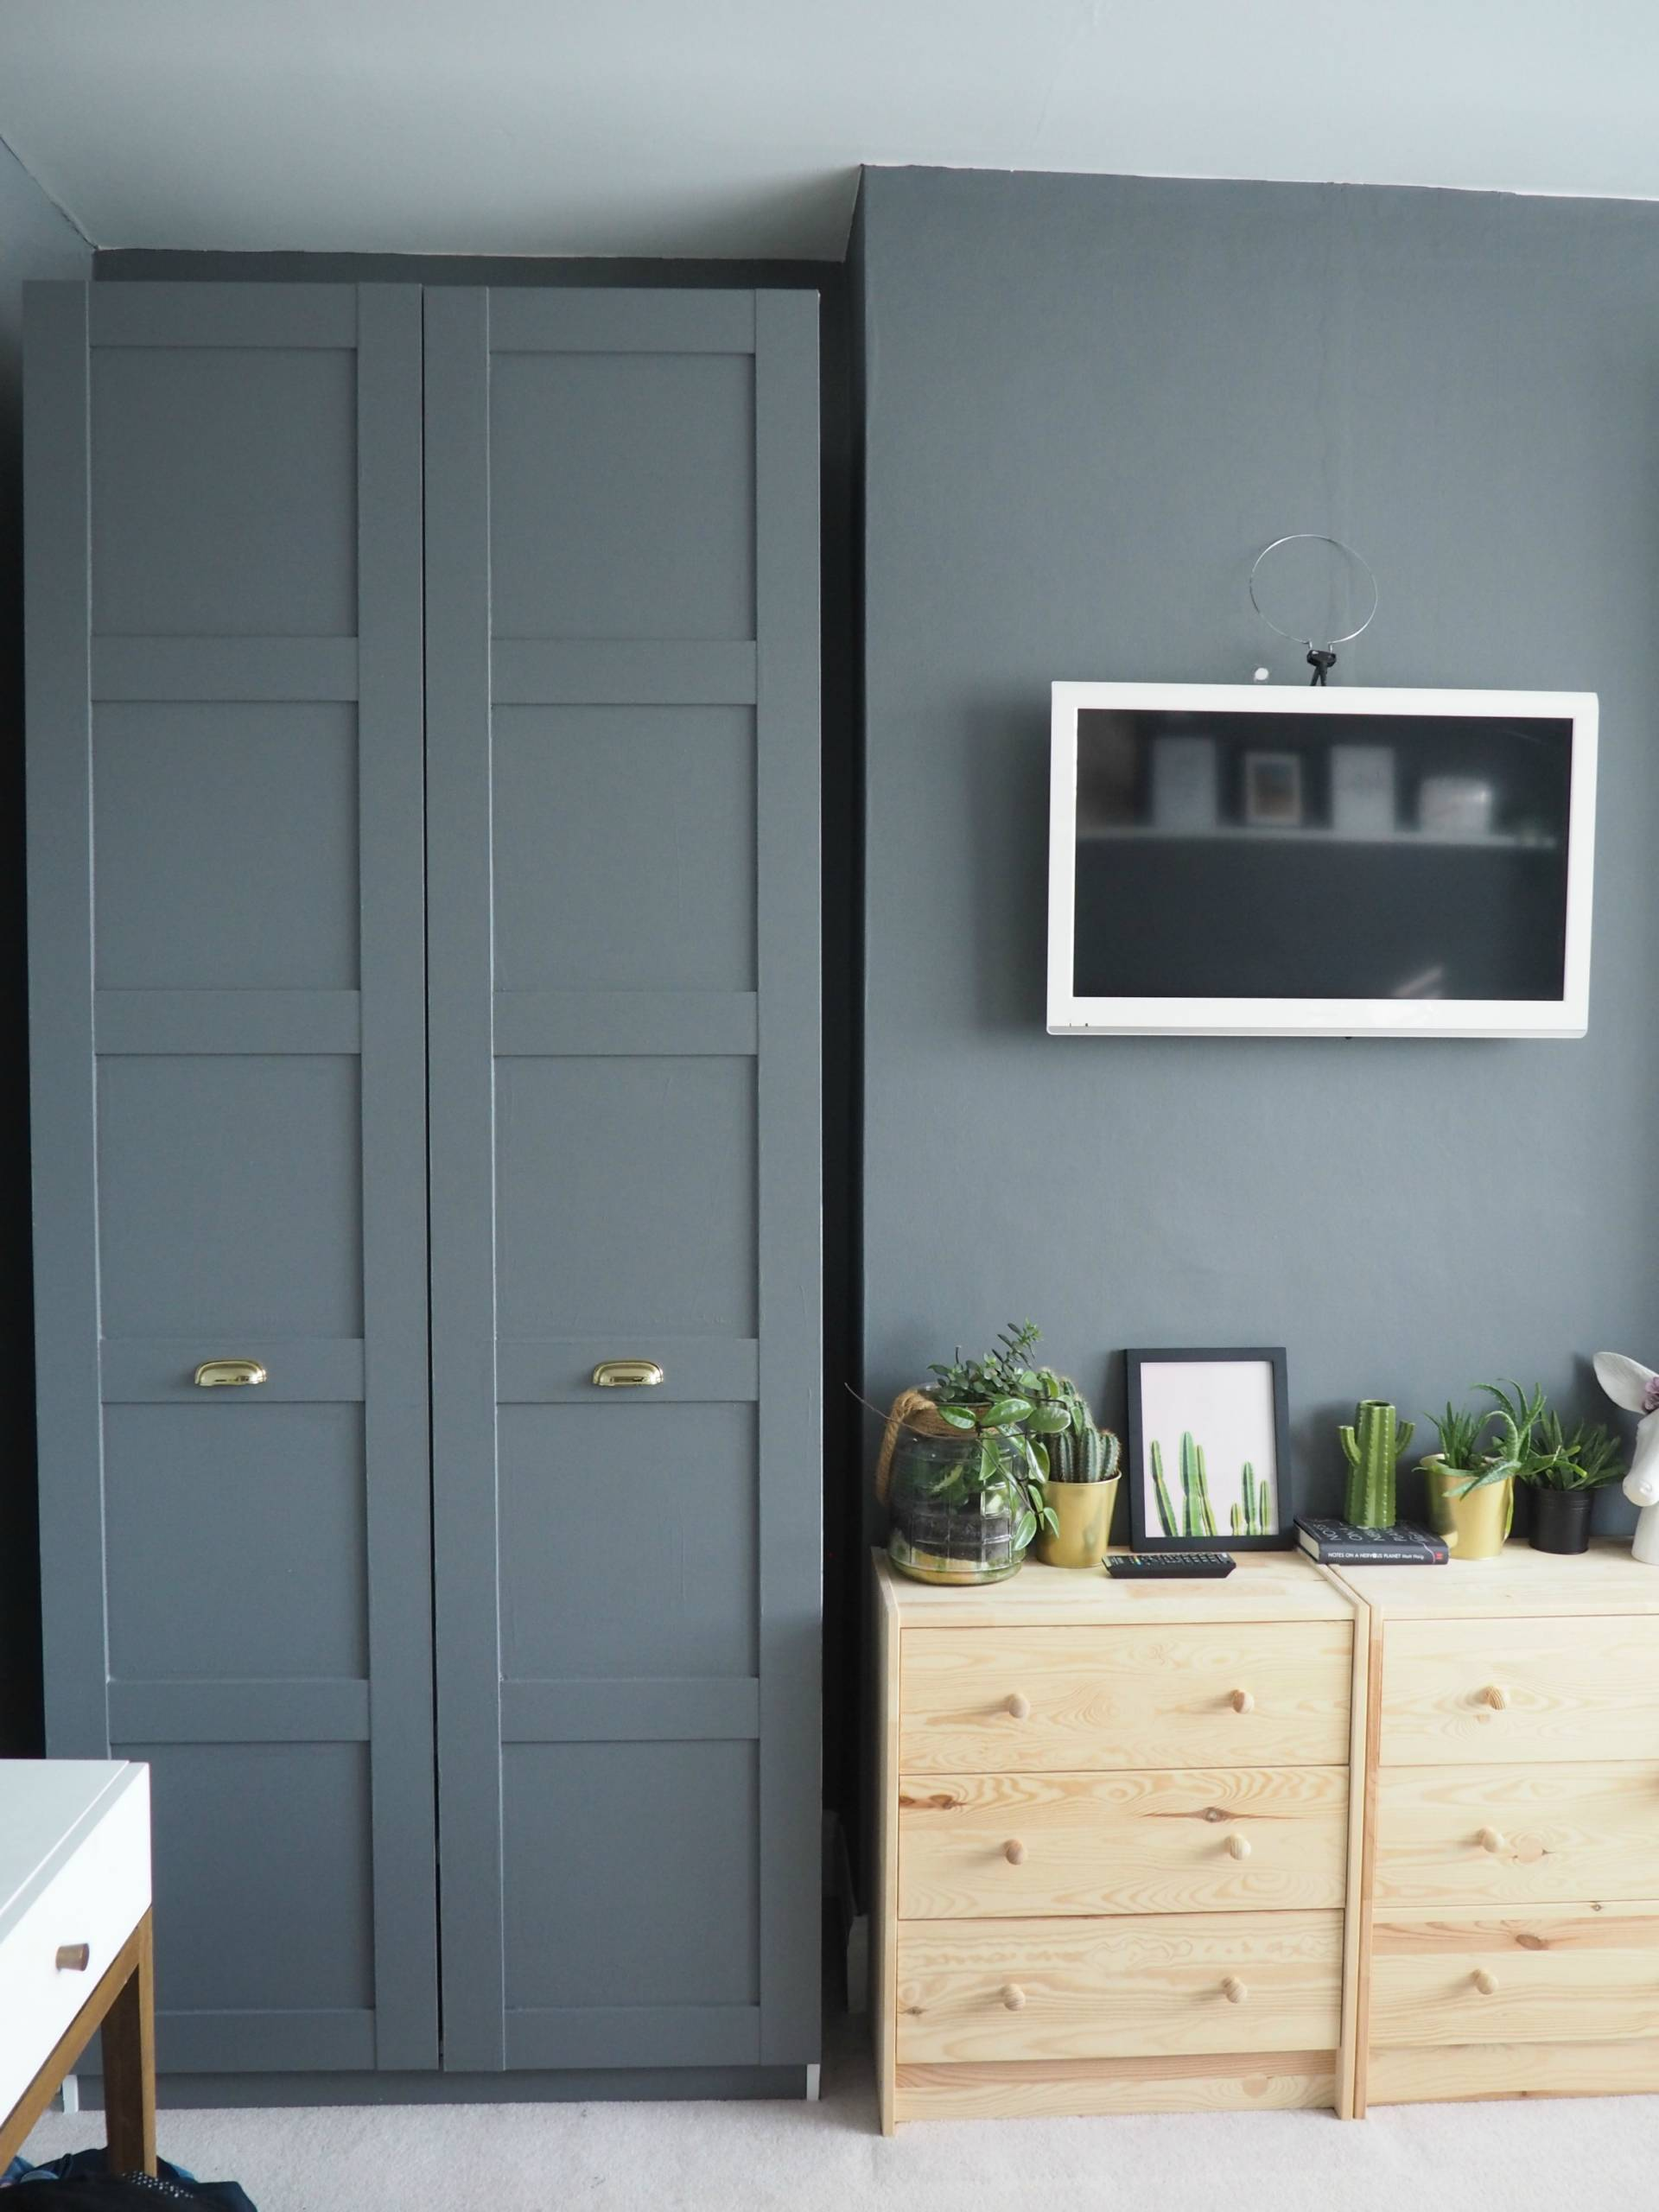 Grey Ikea Pax wardrobe hack